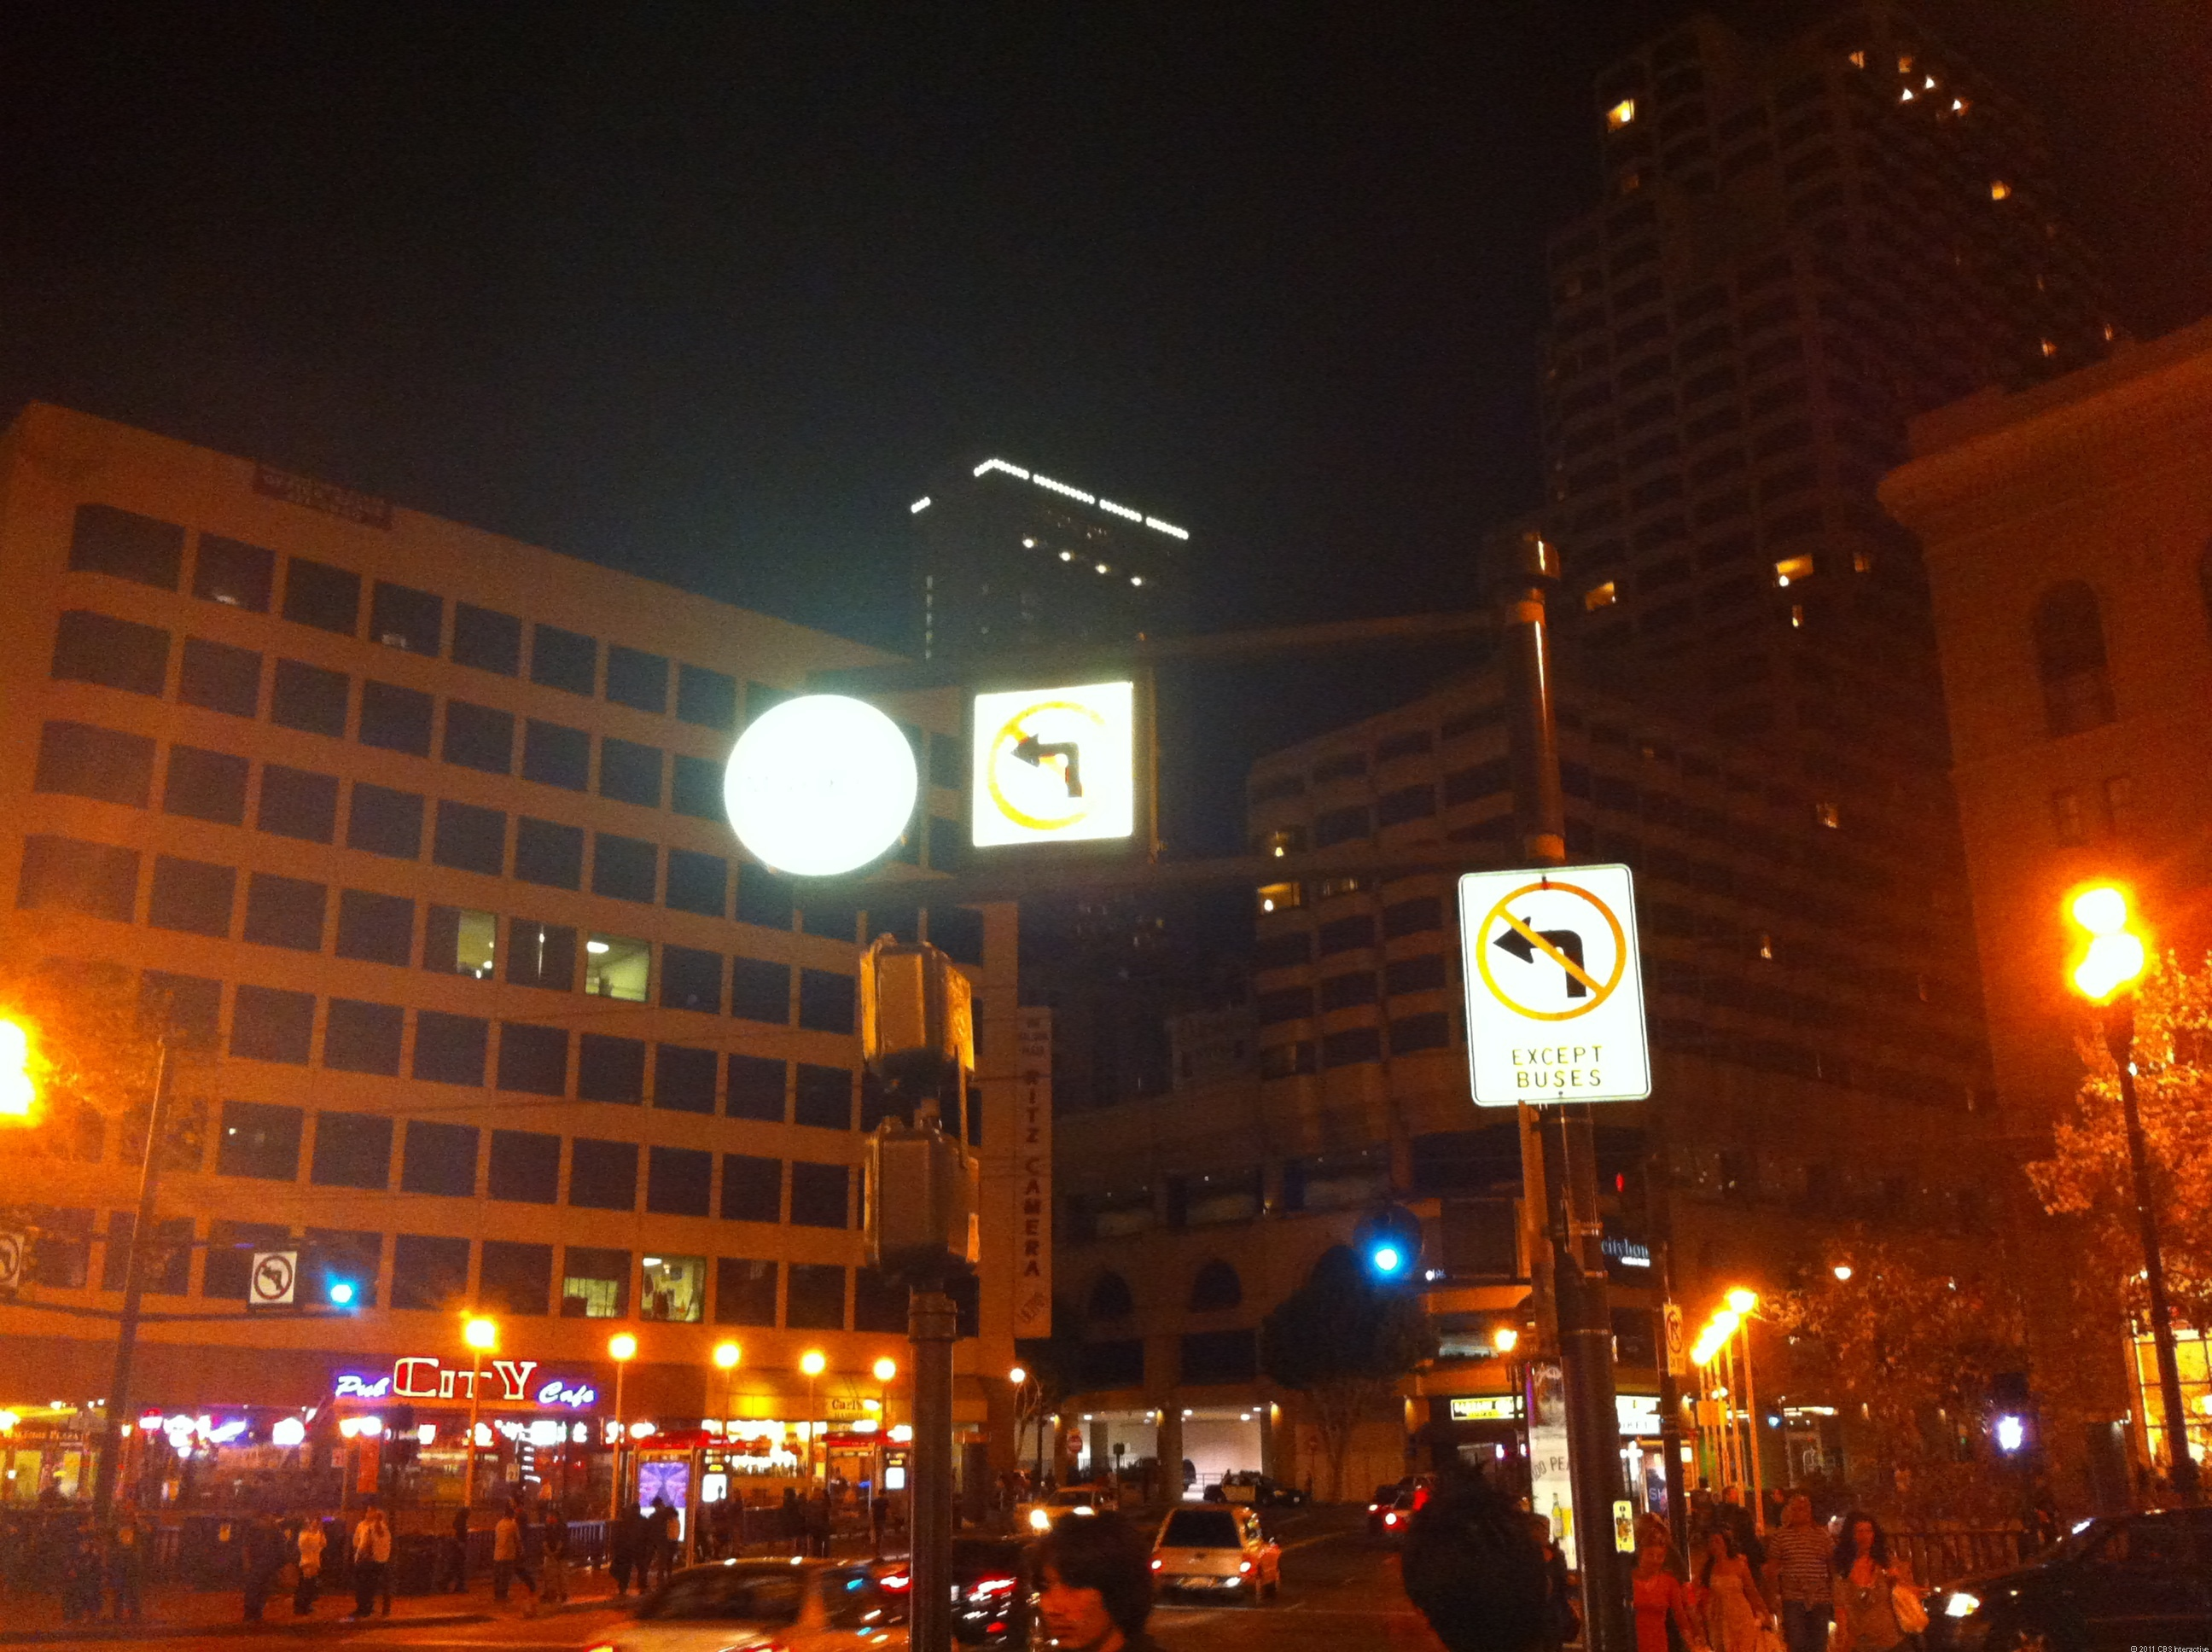 Downtown at night: iPhone 4